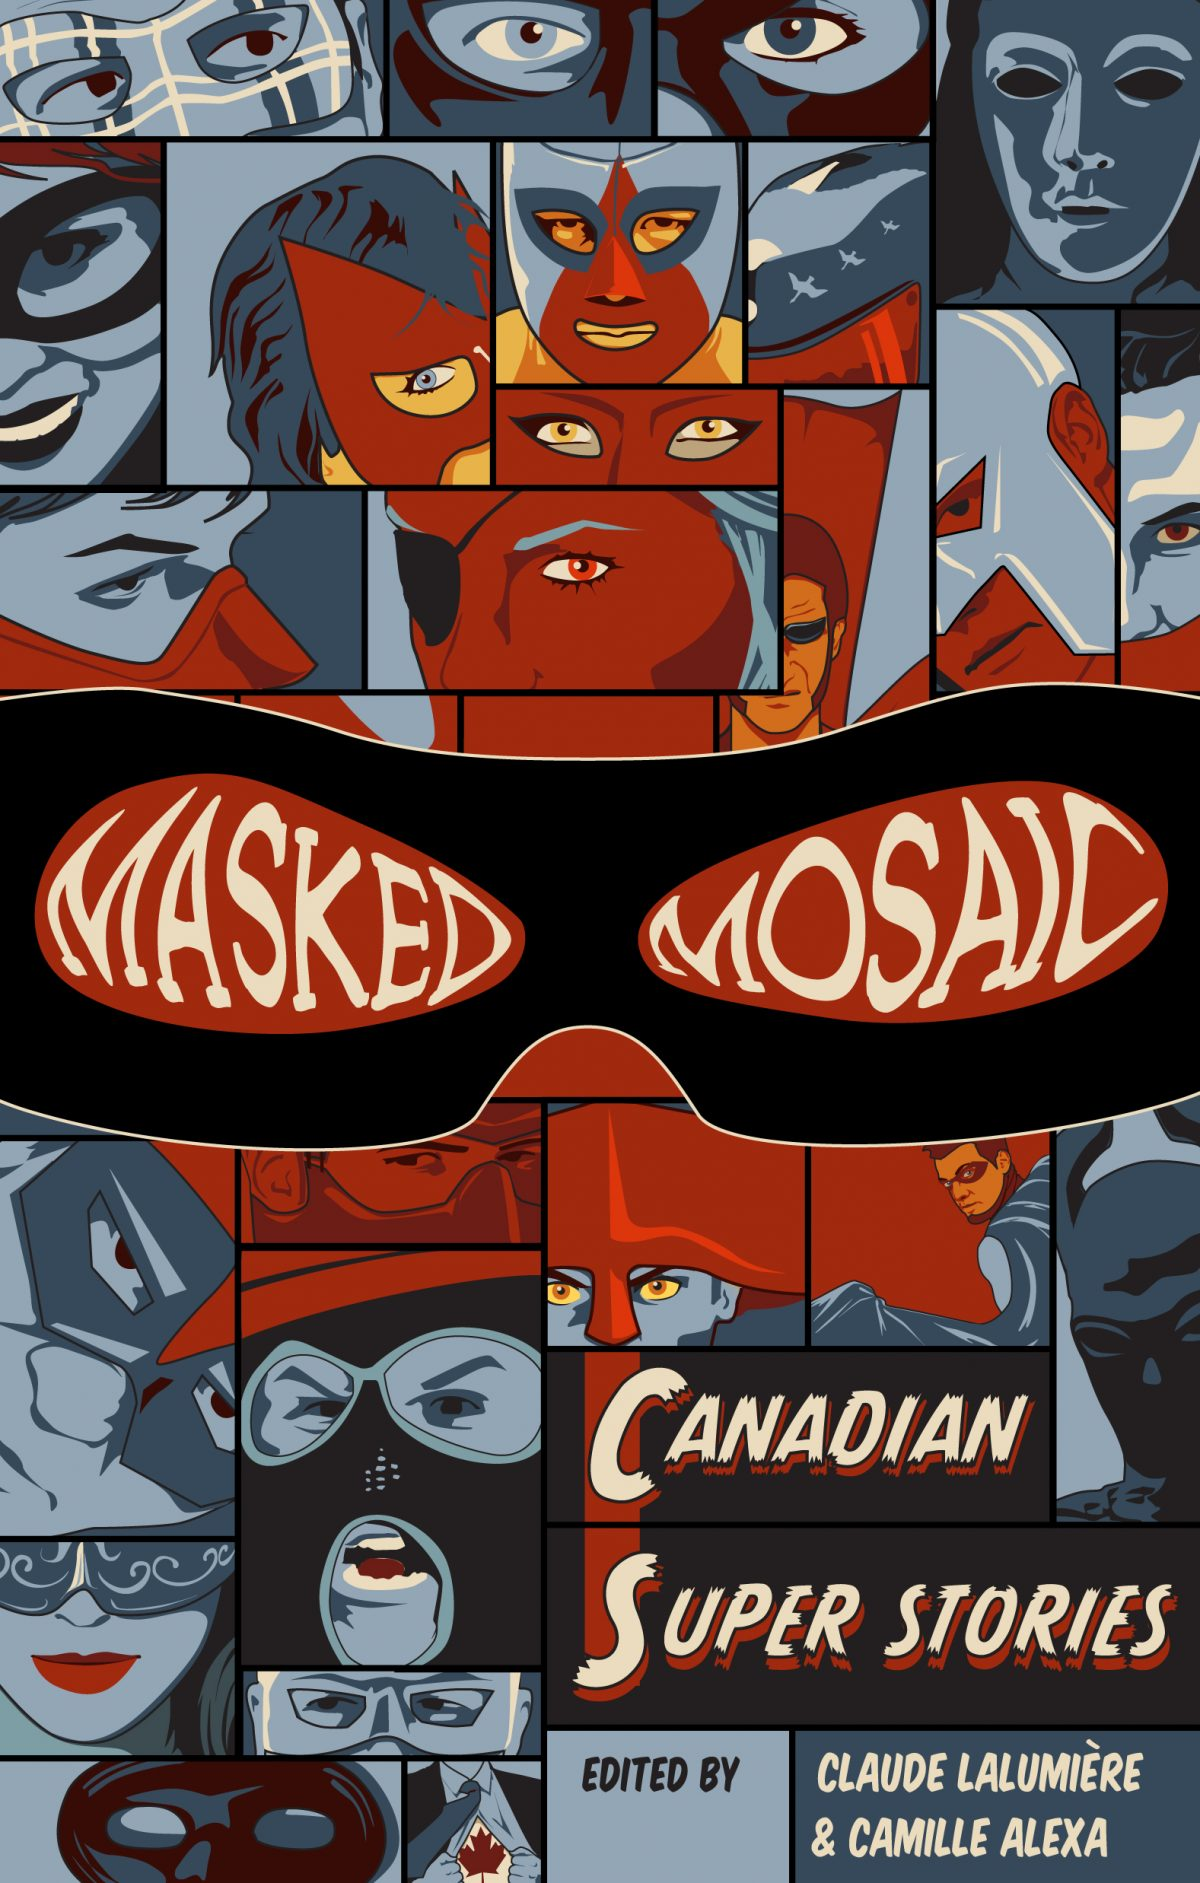 Masked Mosaic:Canadian Super Hero Stories (Tyche Books 2013) Edited by Claude Lalumiere and Camille Alexa